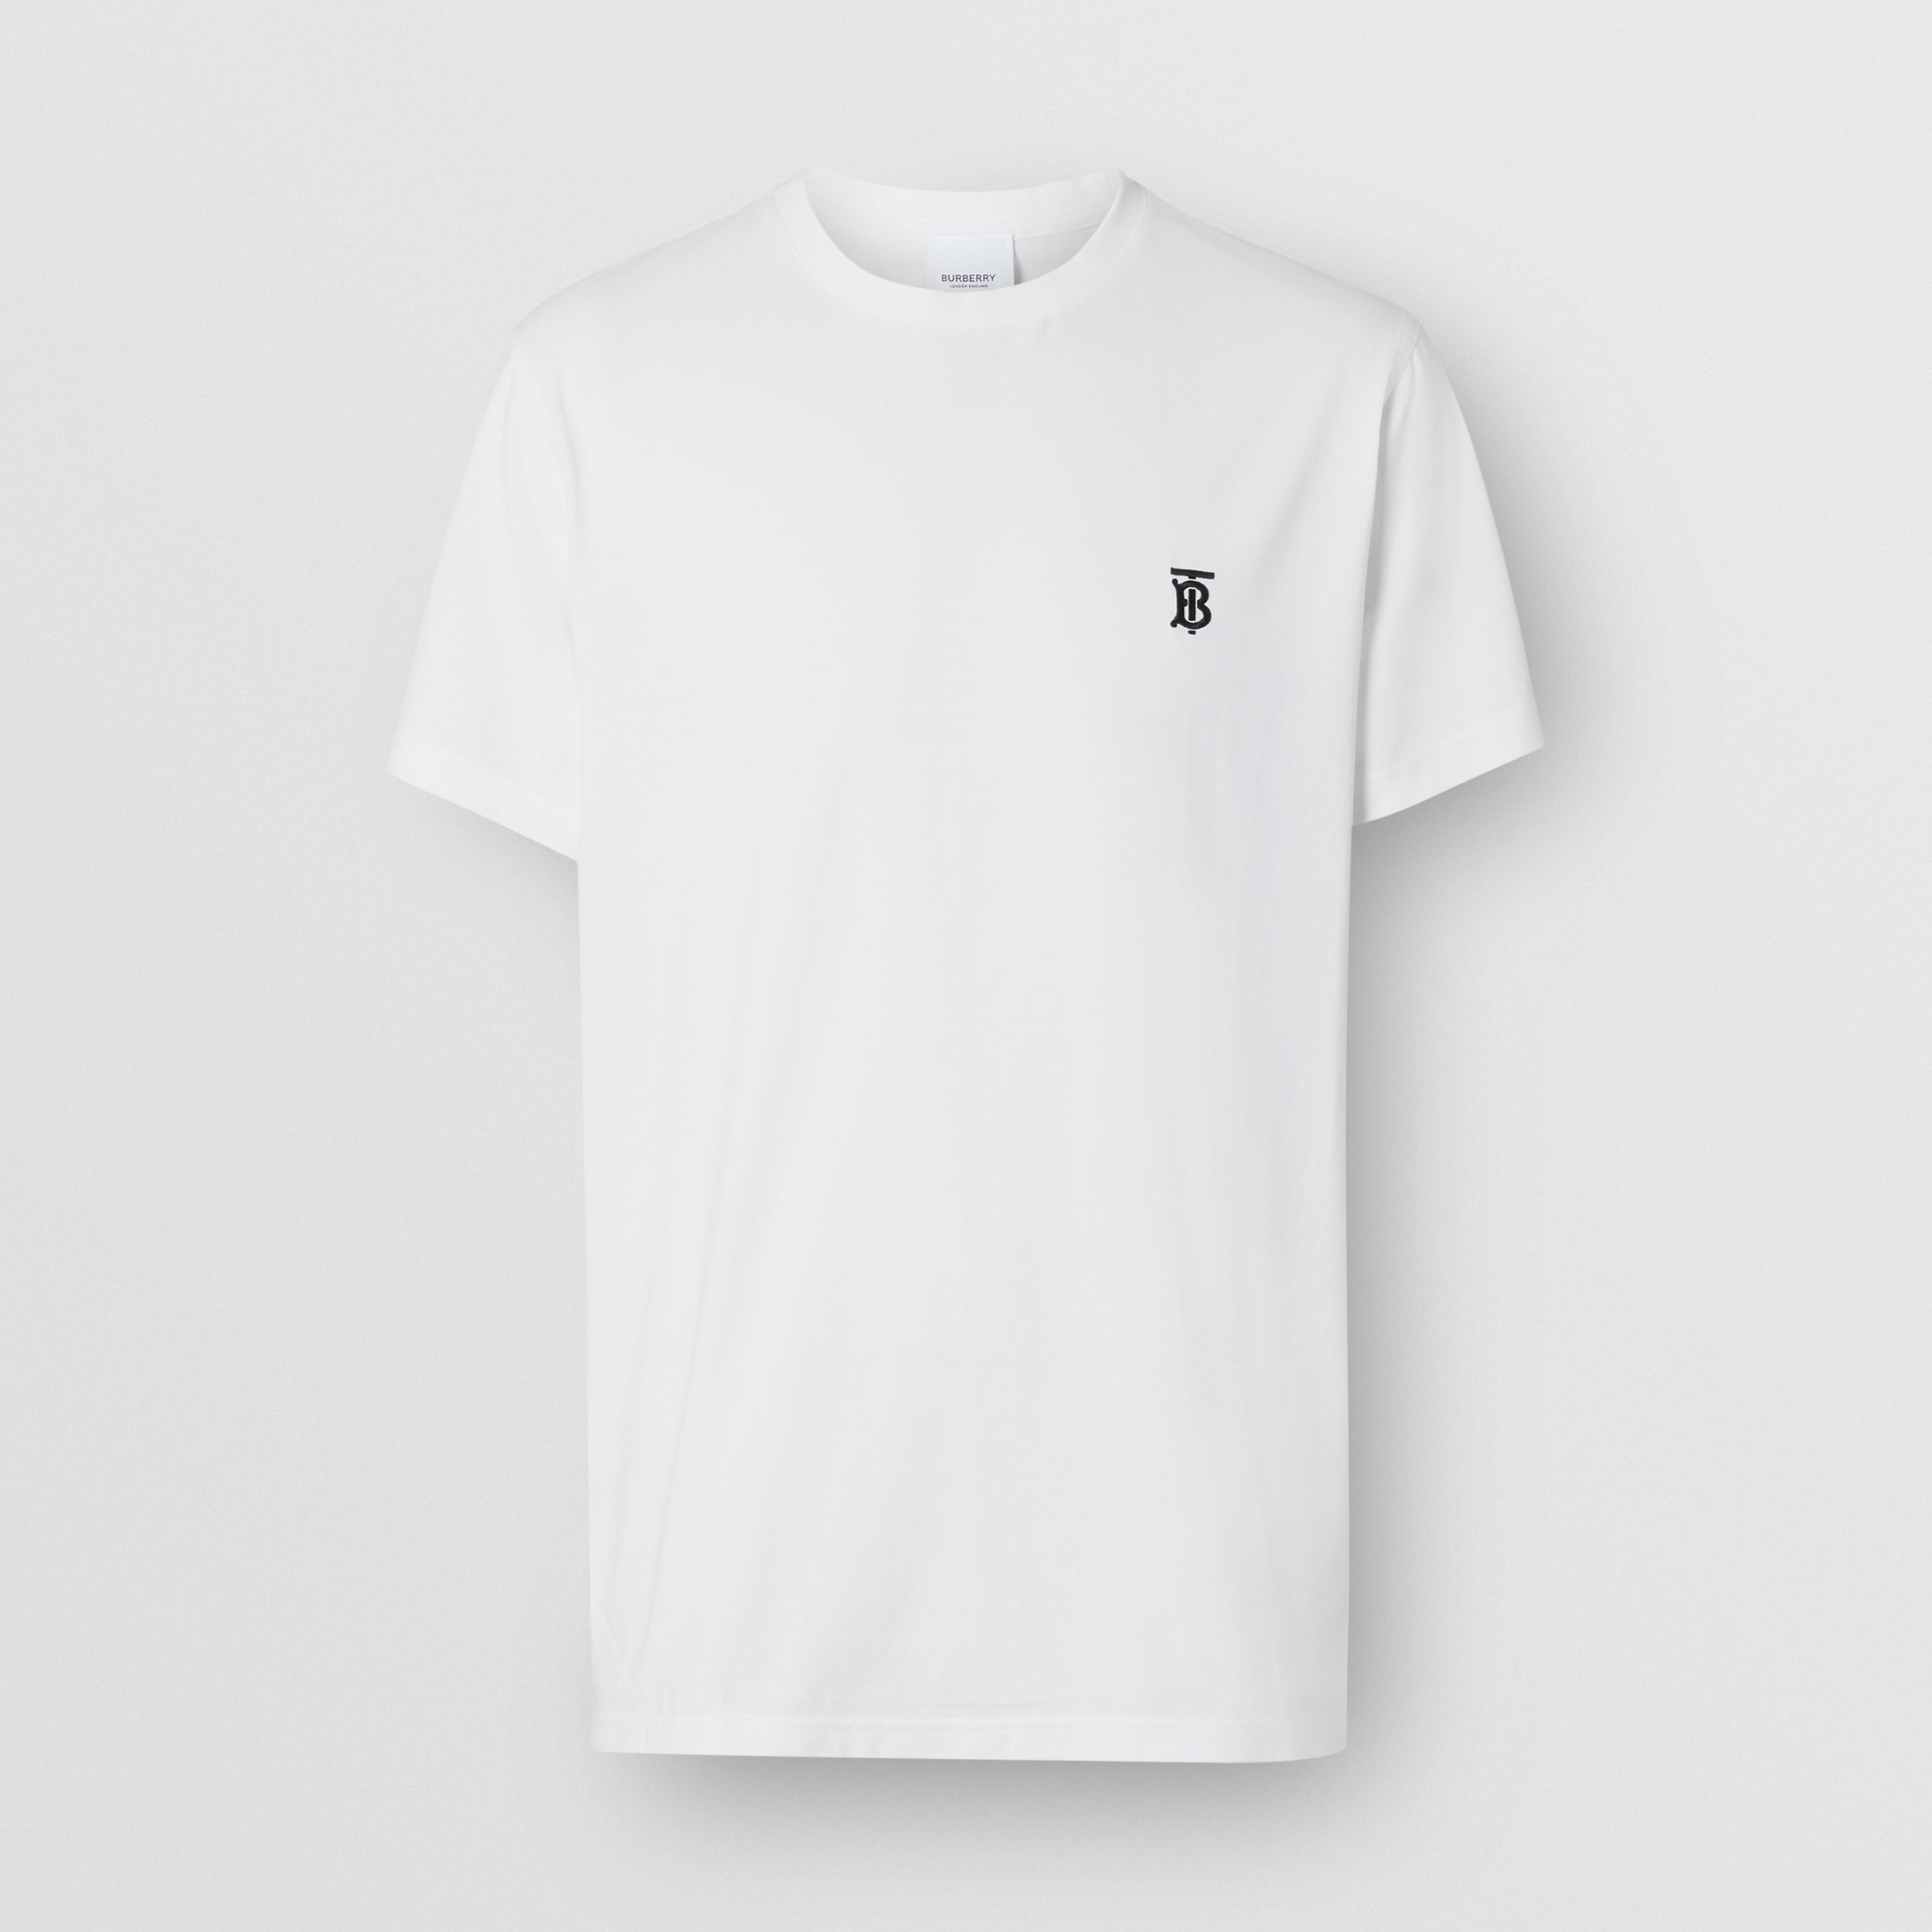 Monogram Motif Cotton T-shirt in White - Men | Burberry United Kingdom - 4